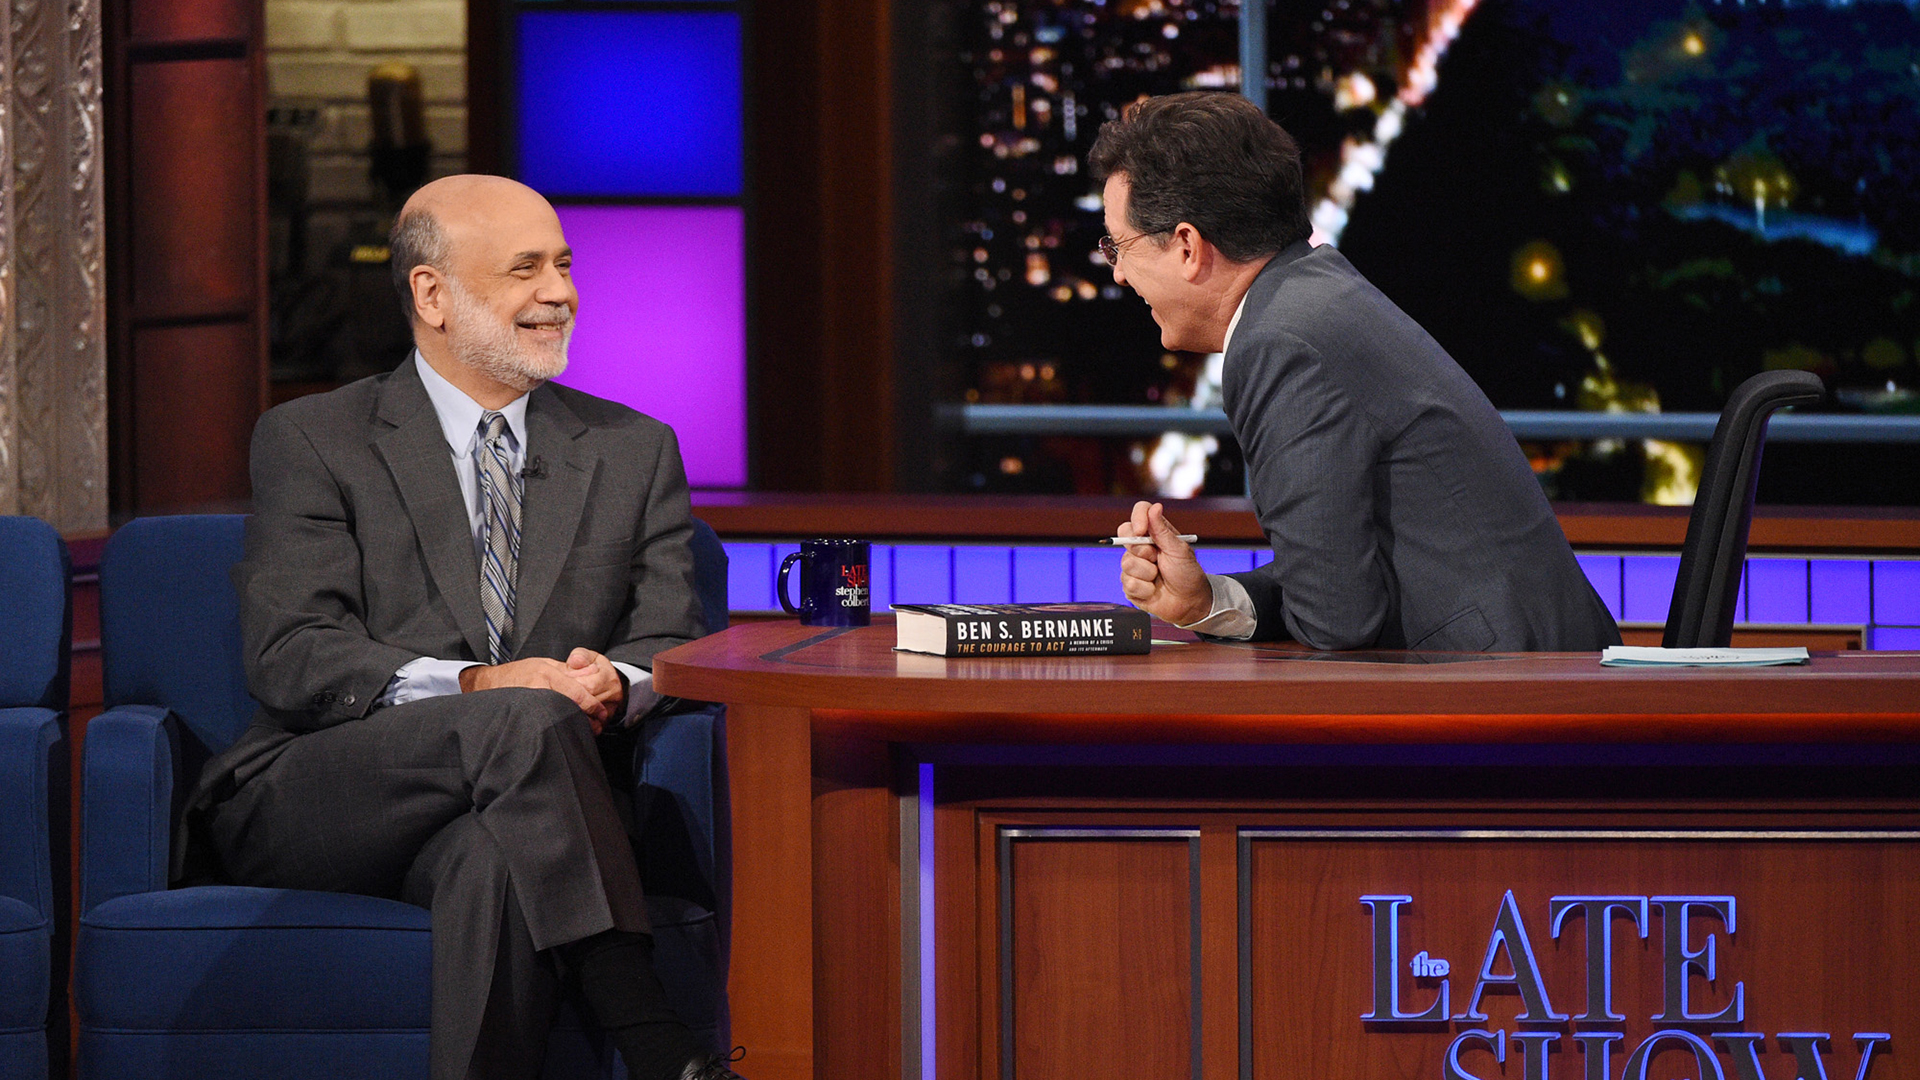 Ben Bernanke and Stephen Colbert